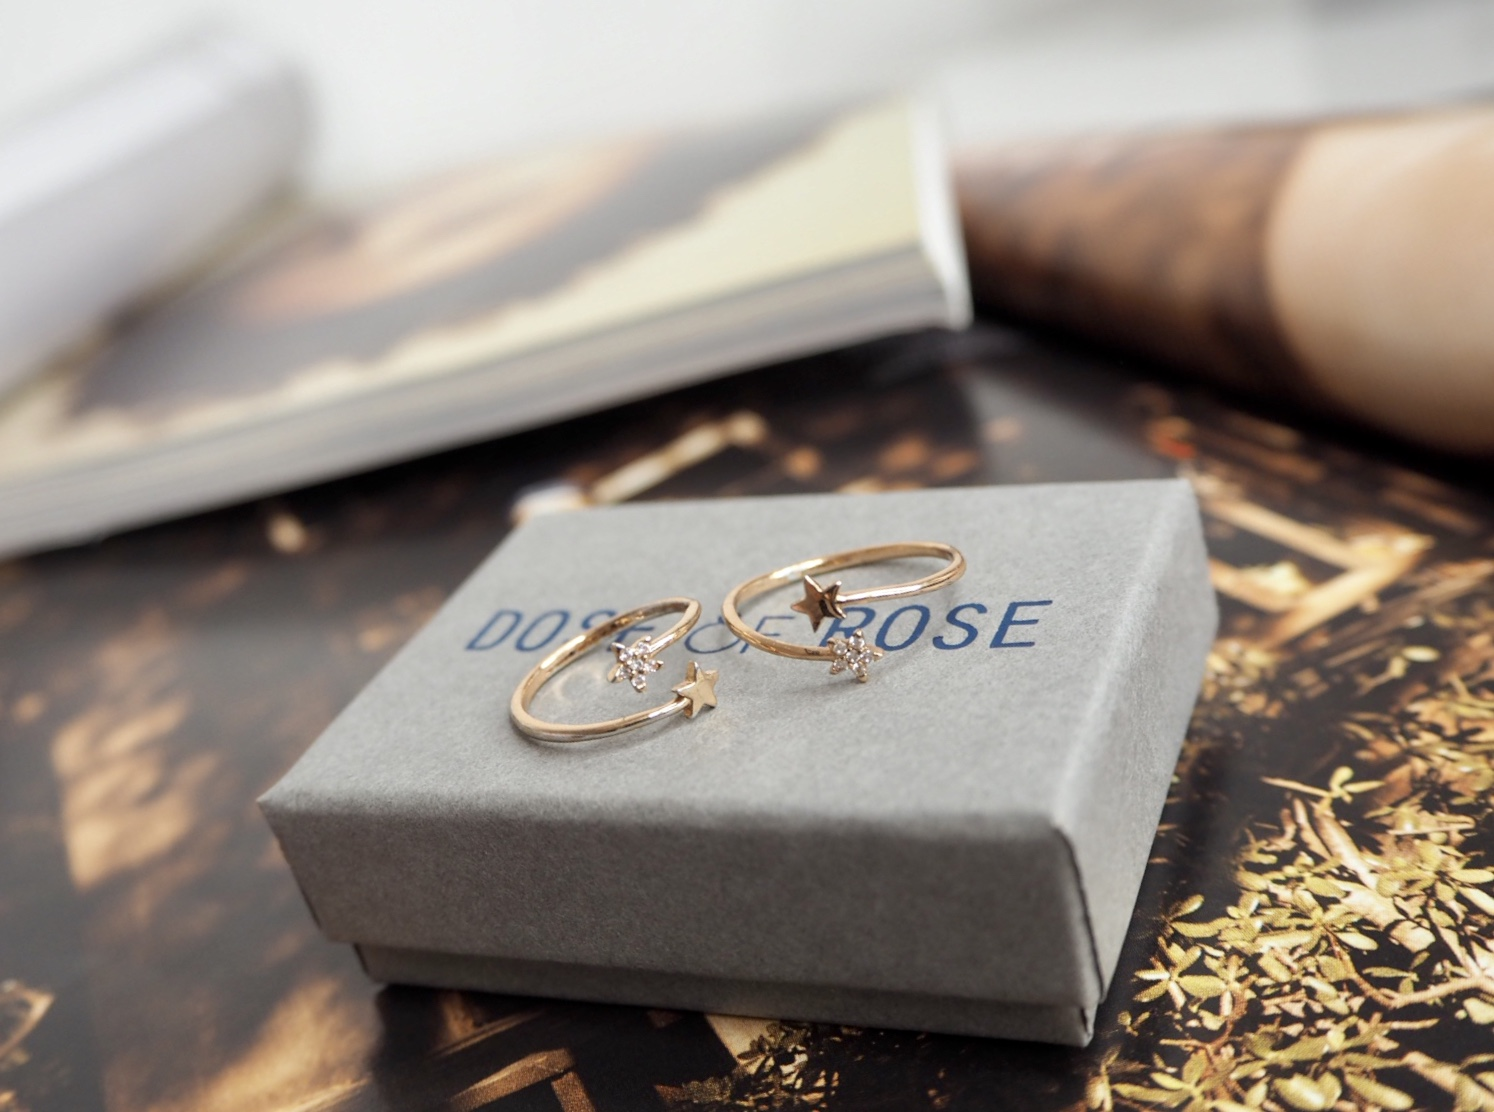 Dose of rose tiny star ring set